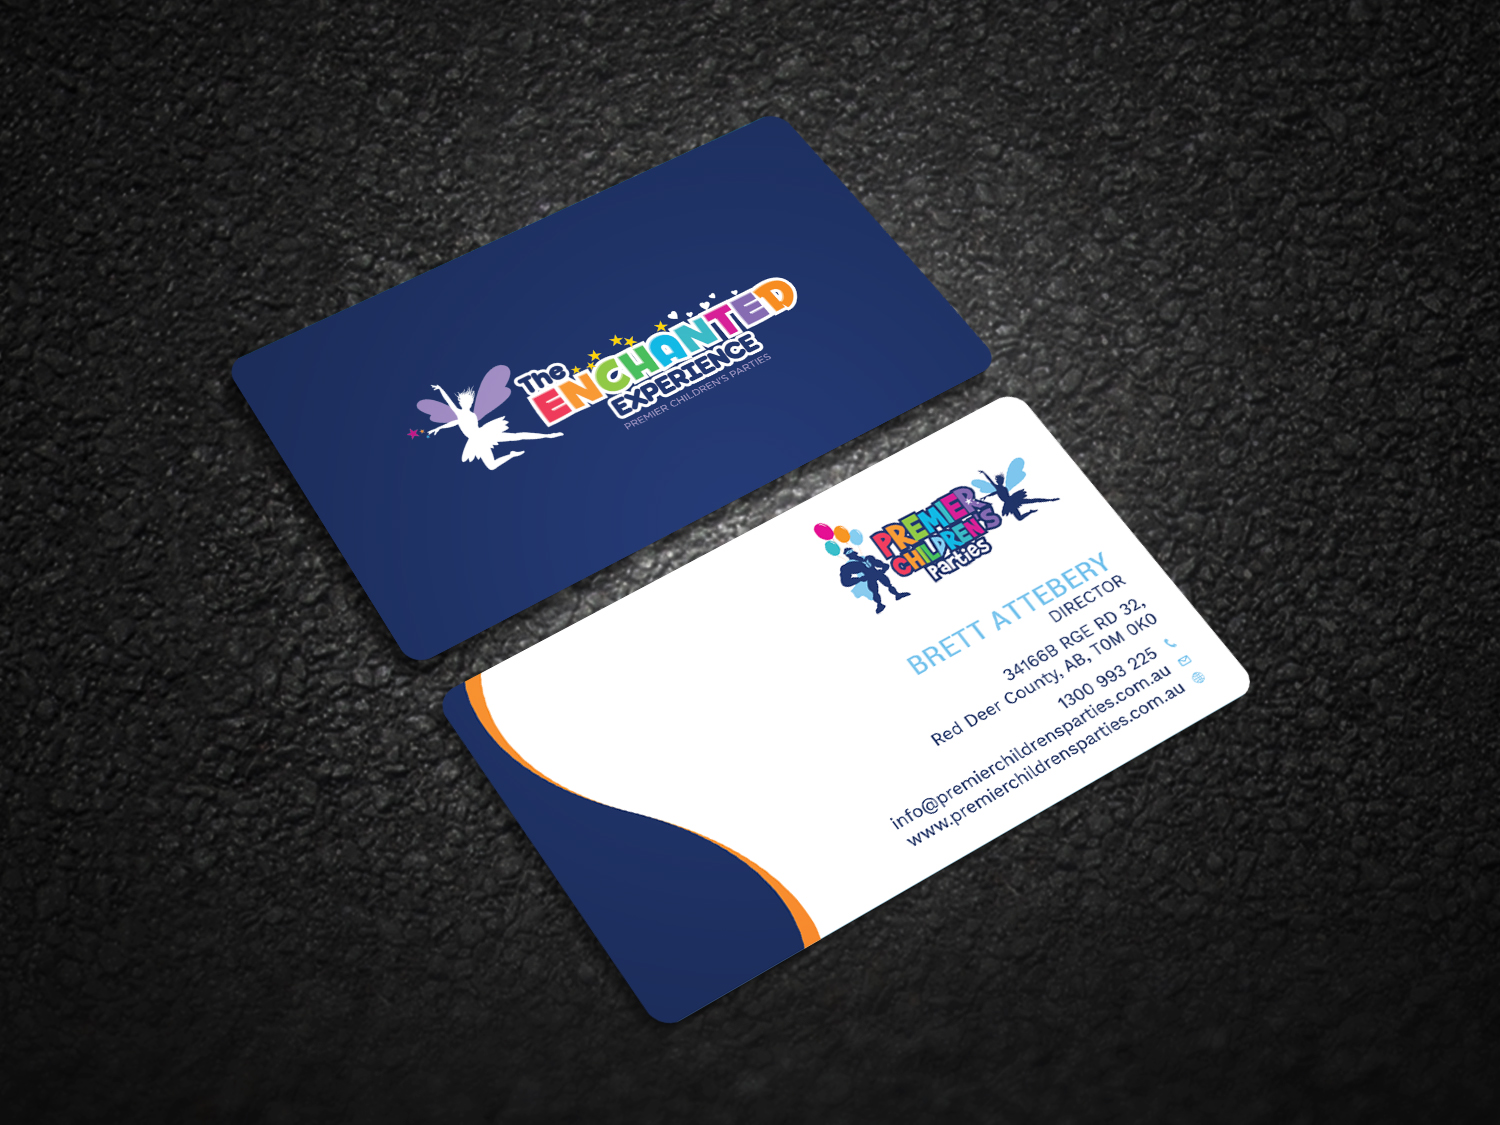 Playful modern business card design for action reaction business card design by graphic flame for childrens party business needs a business card design reheart Images